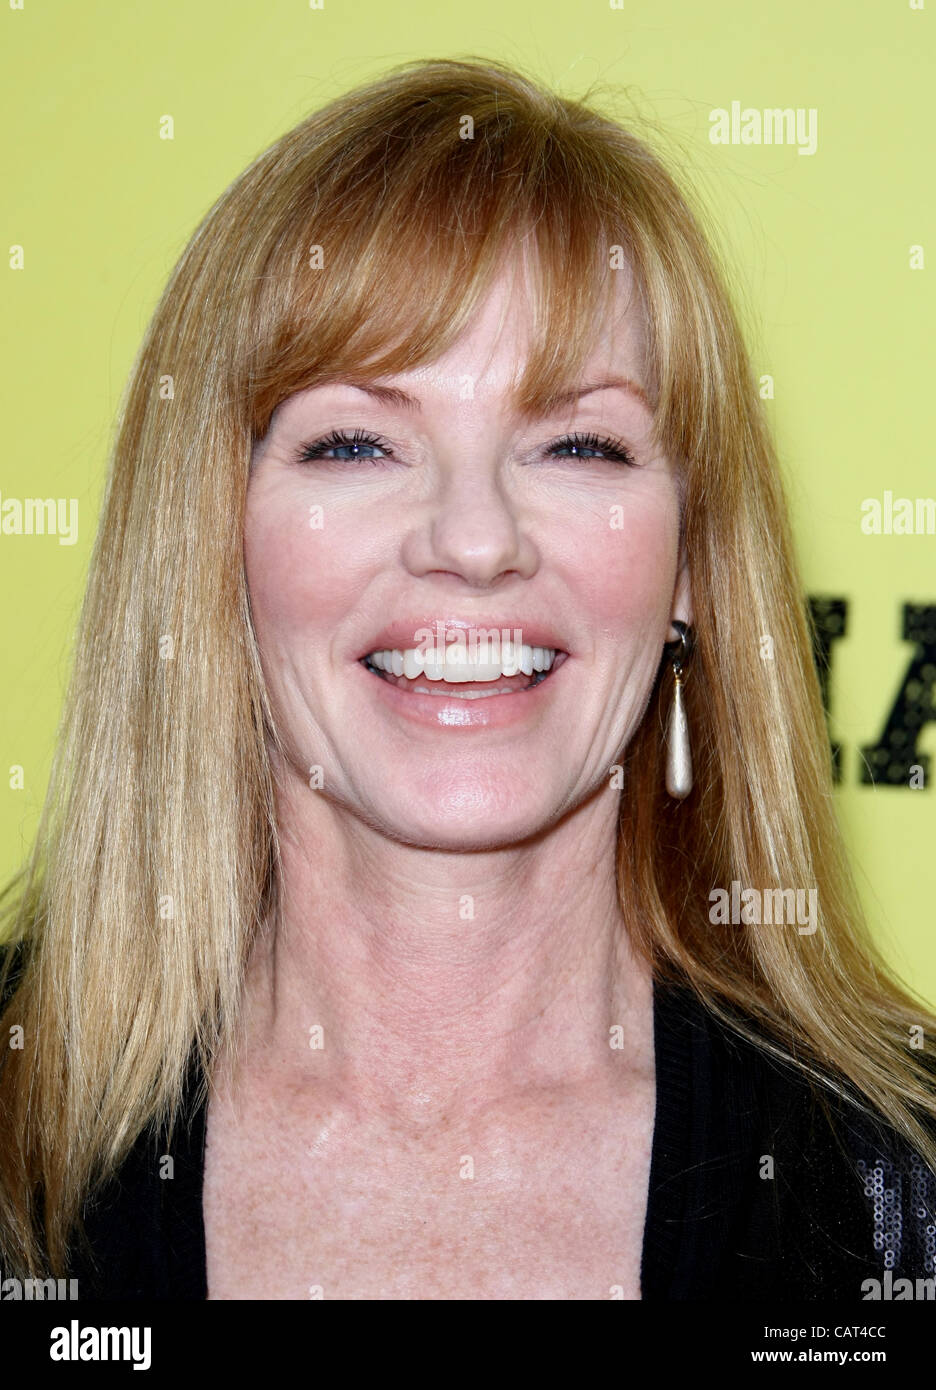 MARG HELGENBERGER MARLEY. LOS ANGELES PREMIERE HOLLYWOOD LOS ANGELES CALIFORNIA USA 17 April 2012 - Stock Image